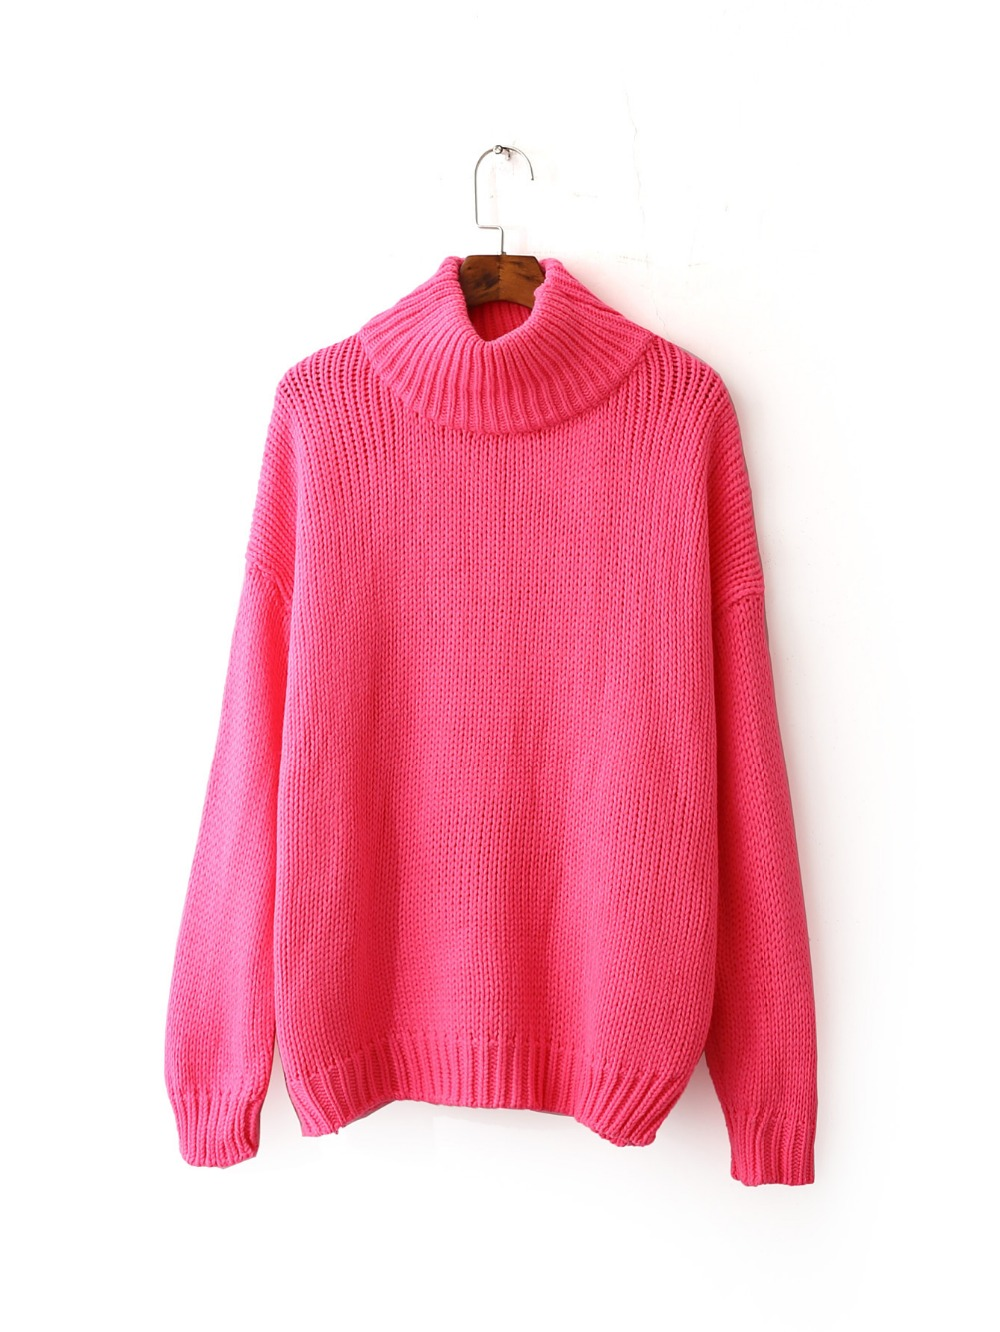 2016 Women Sweaters And Pullovers Hot Pink Sweater Women Winter ...